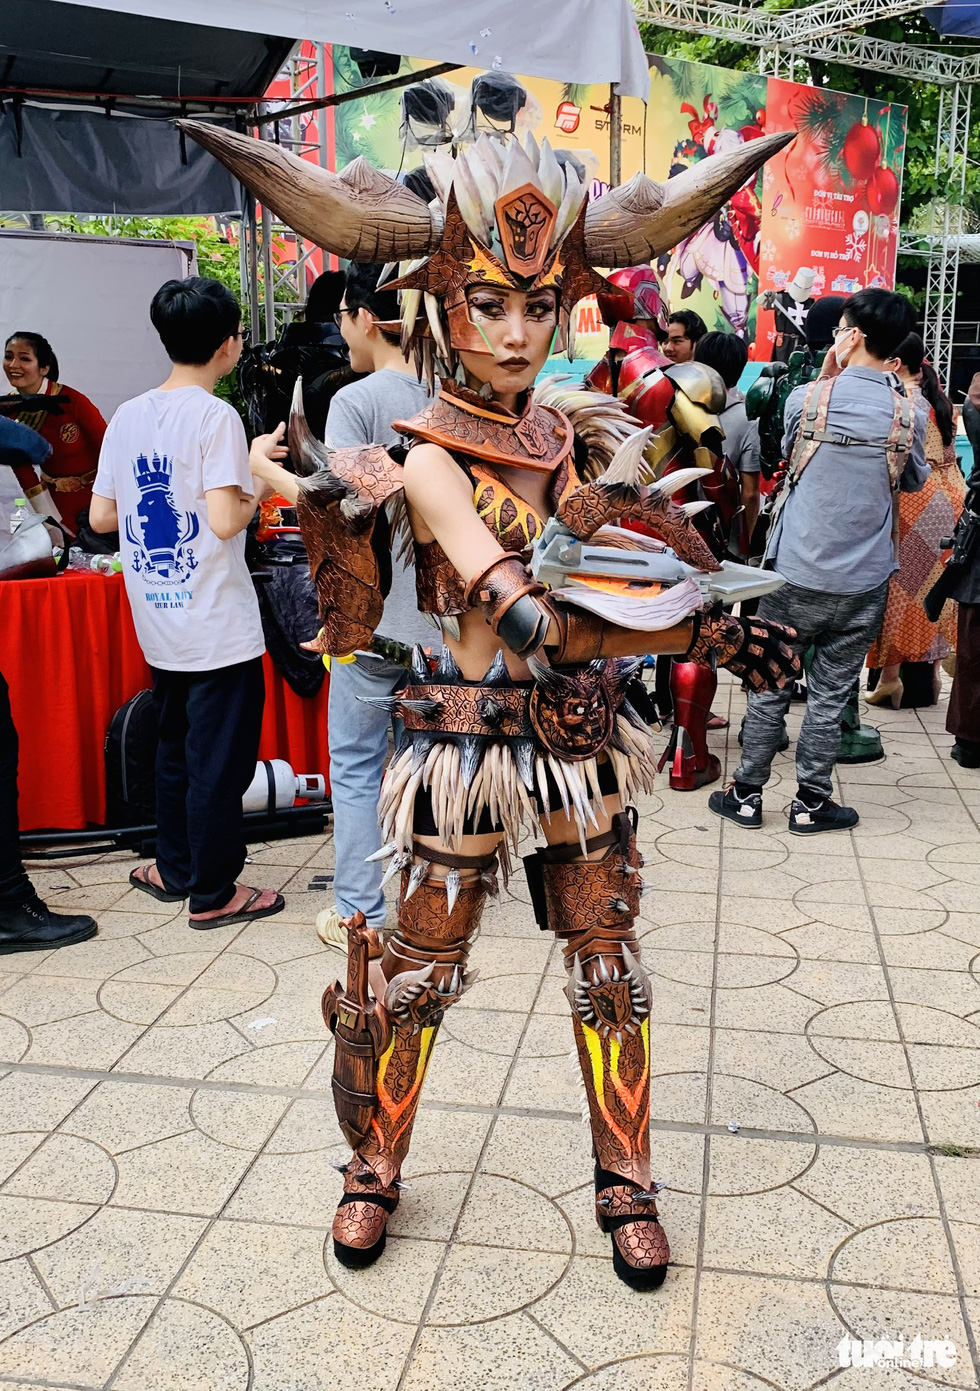 A participant dons a cosplay costume at the cosplay contest Super Hero The Champion Season 1 in District 5, Ho Chi Minh City, December 27, 2020. Photo: Phuong Nam / Tuoi Tre